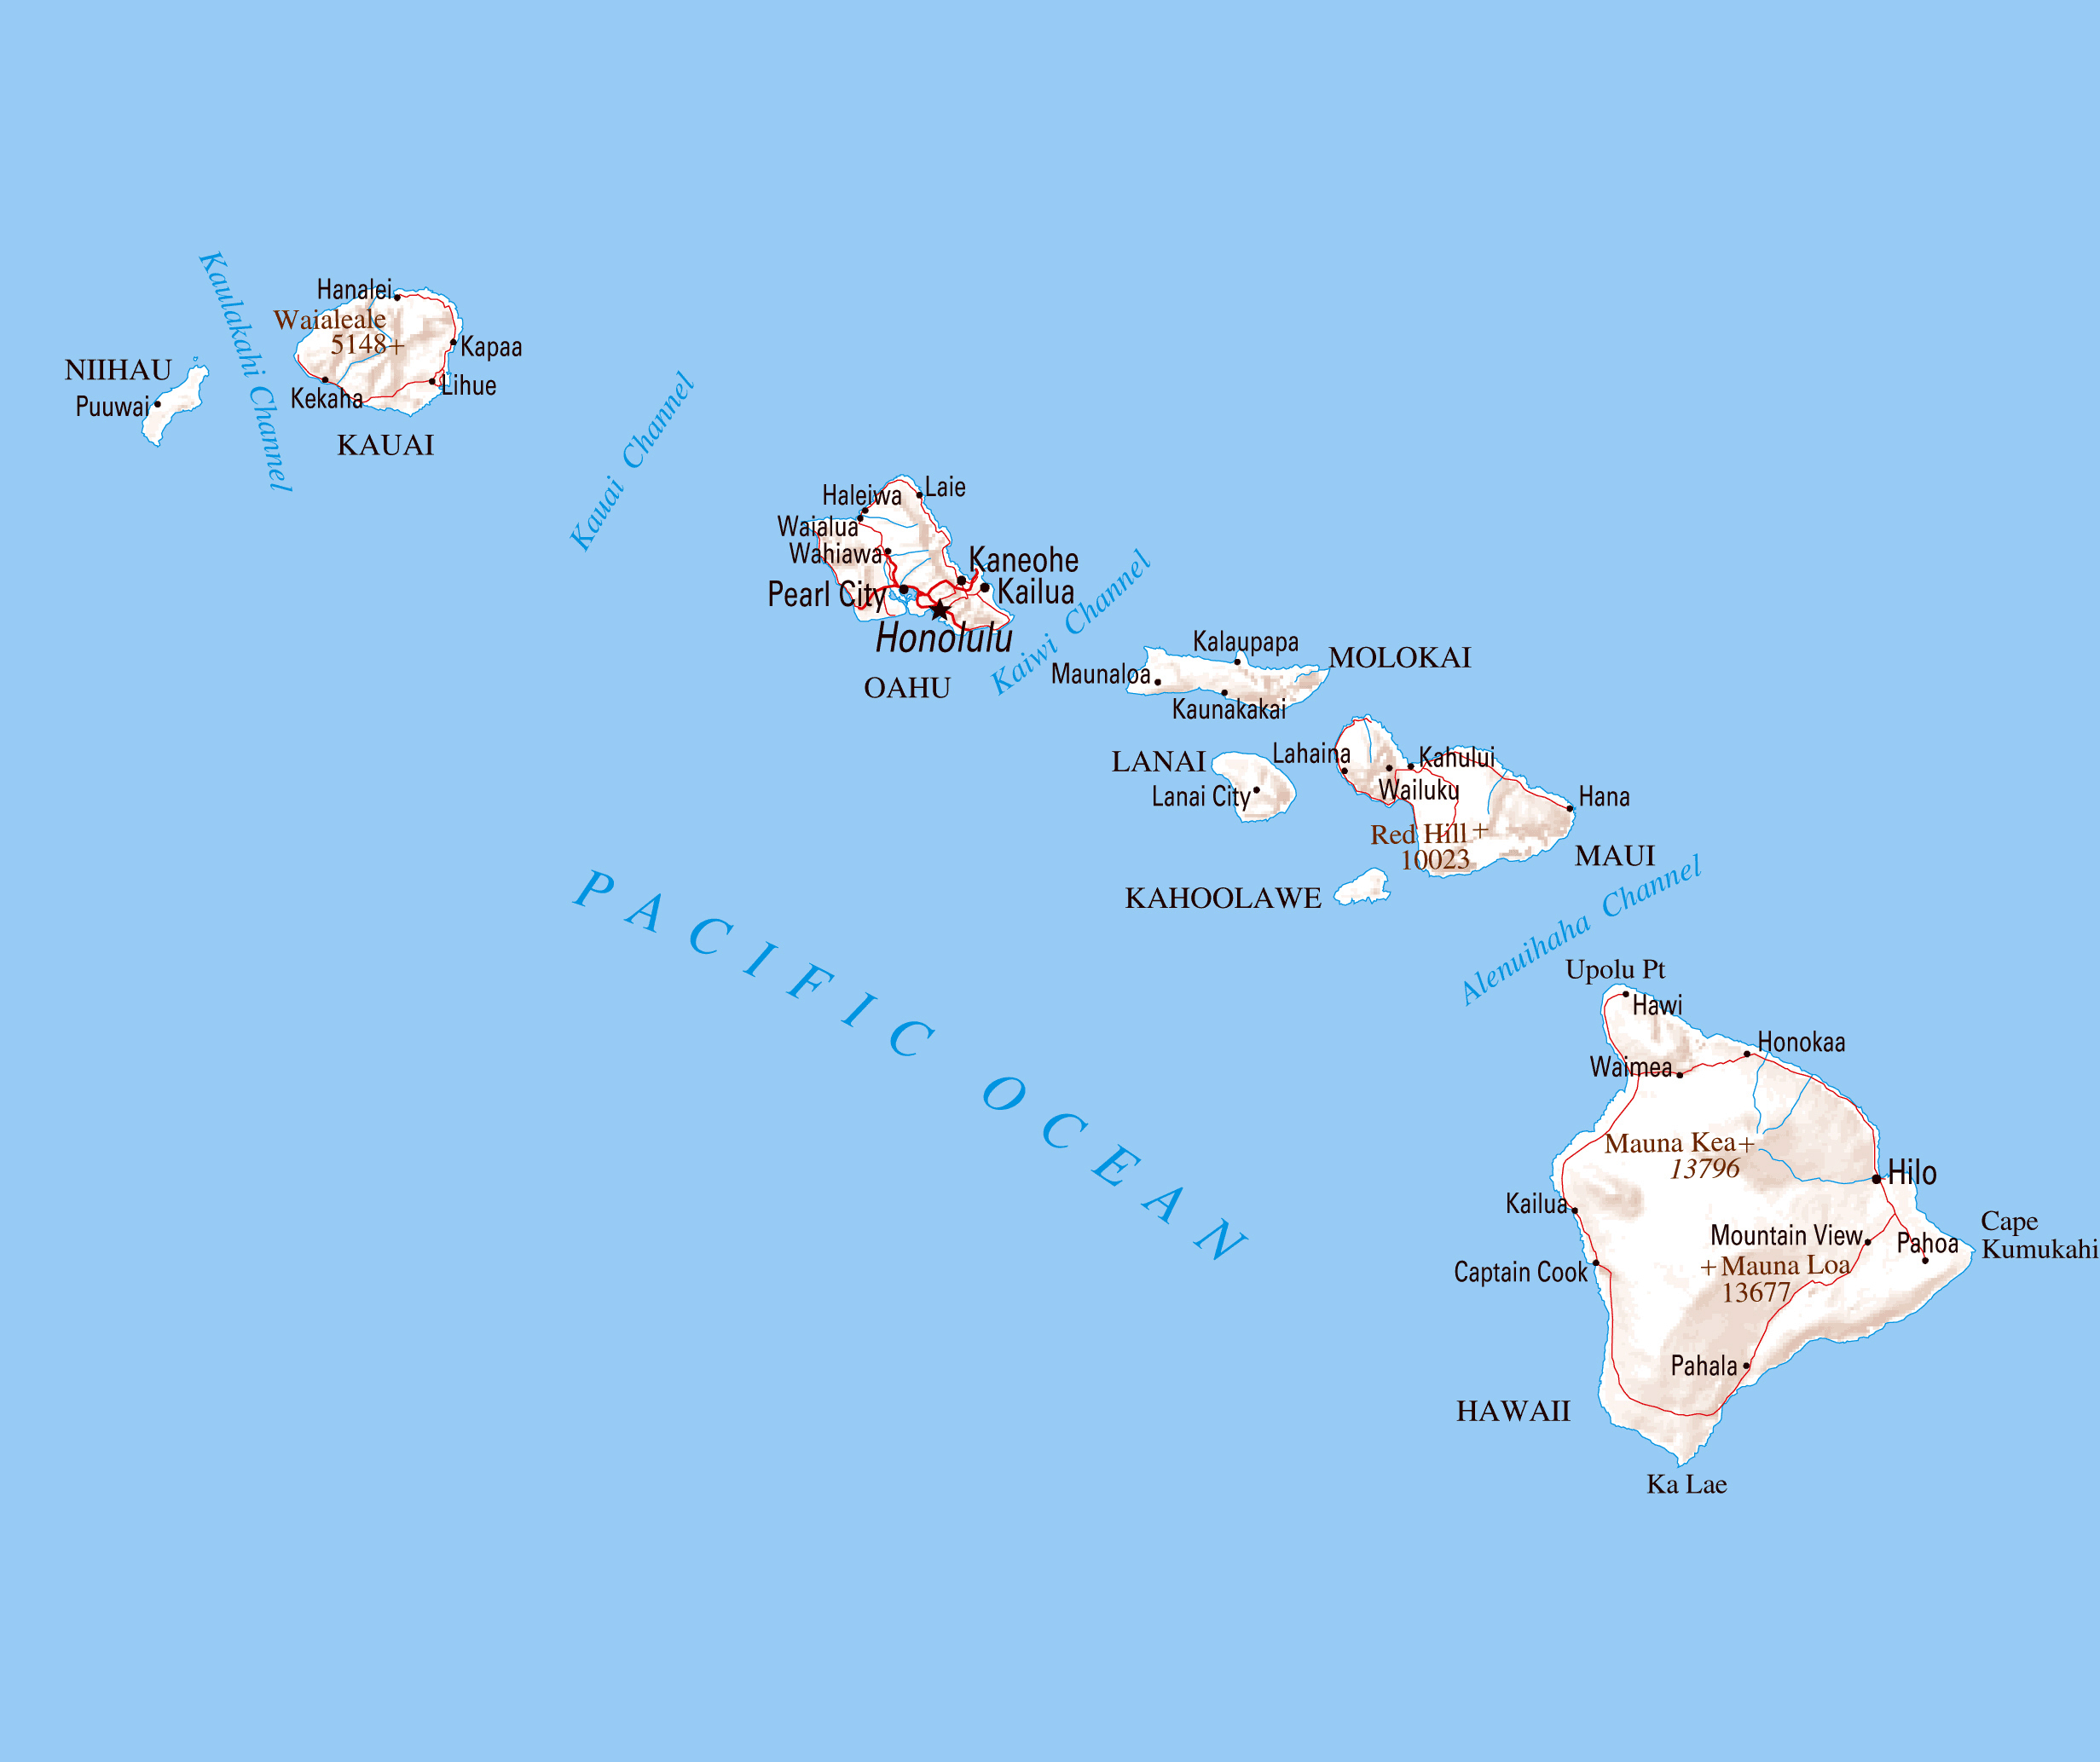 Large Map Of Hawaii State With Relief Roads And Cities Hawaii - Usa map with roads and cities